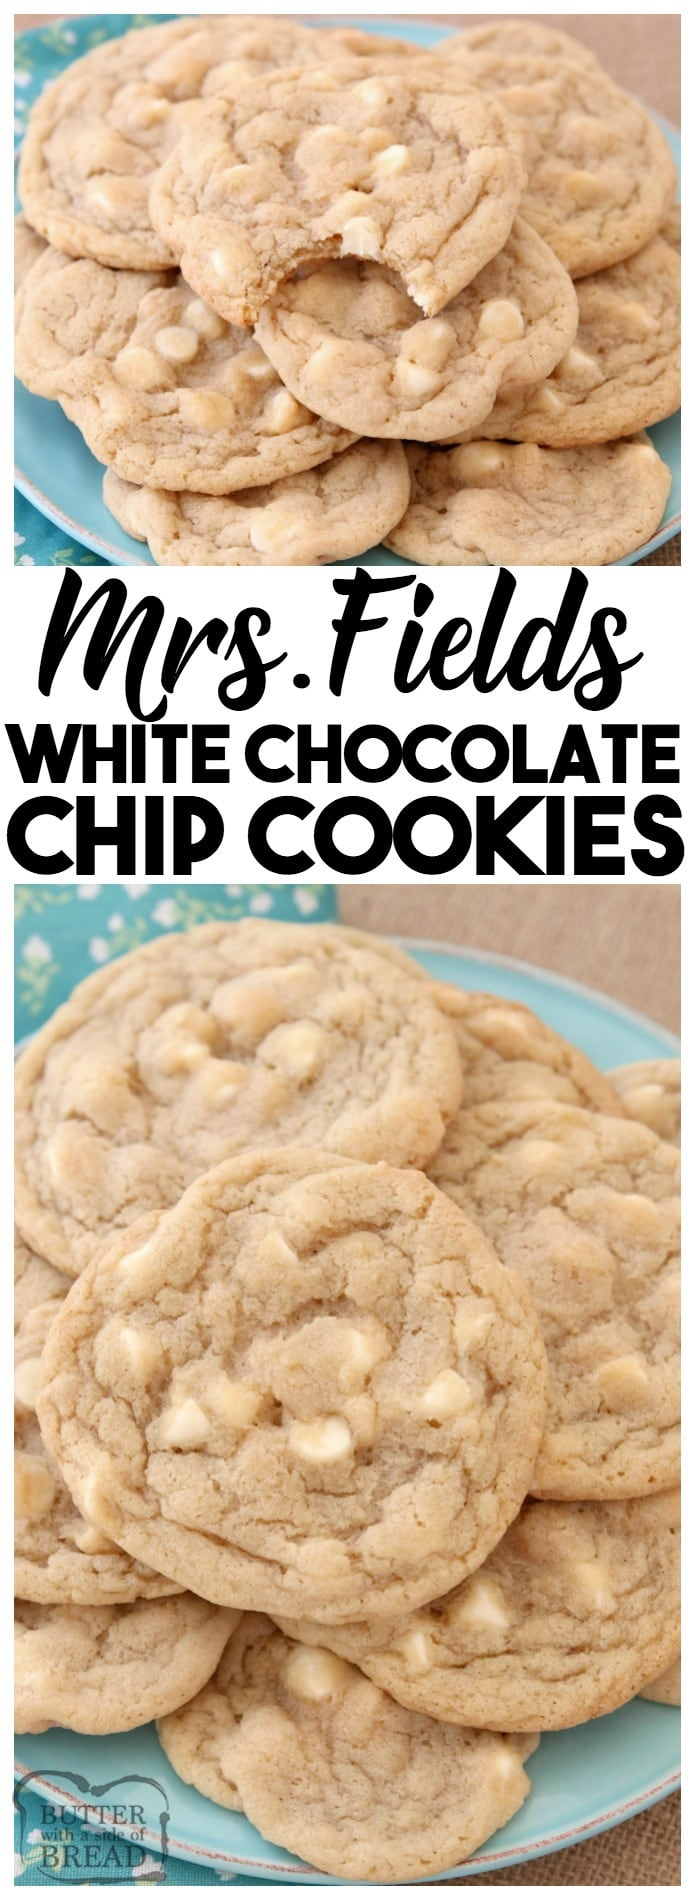 Mrs.Fields White Chocolate Chip Cookies are soft, delicious cookies filled with sweet white chocolate chips. Copycat Mrs.Field's cookie recipe that everyone can make at home! White Chocolate Chip Cookies recipe from Butter With A Side Of Bread